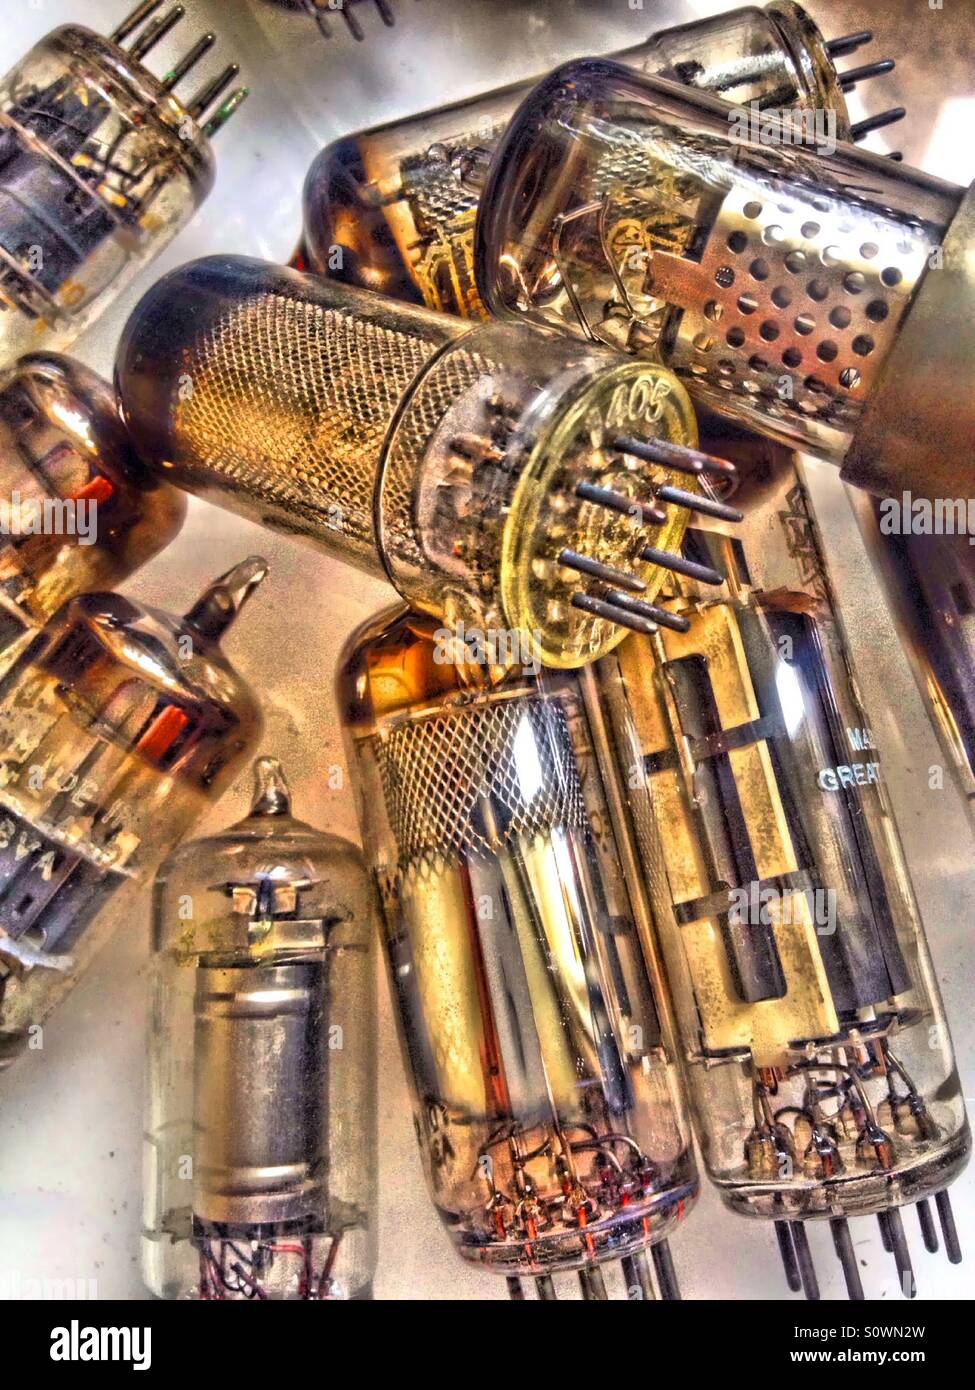 Vintage radio and television valves Stock Photo: 310351969 - Alamy